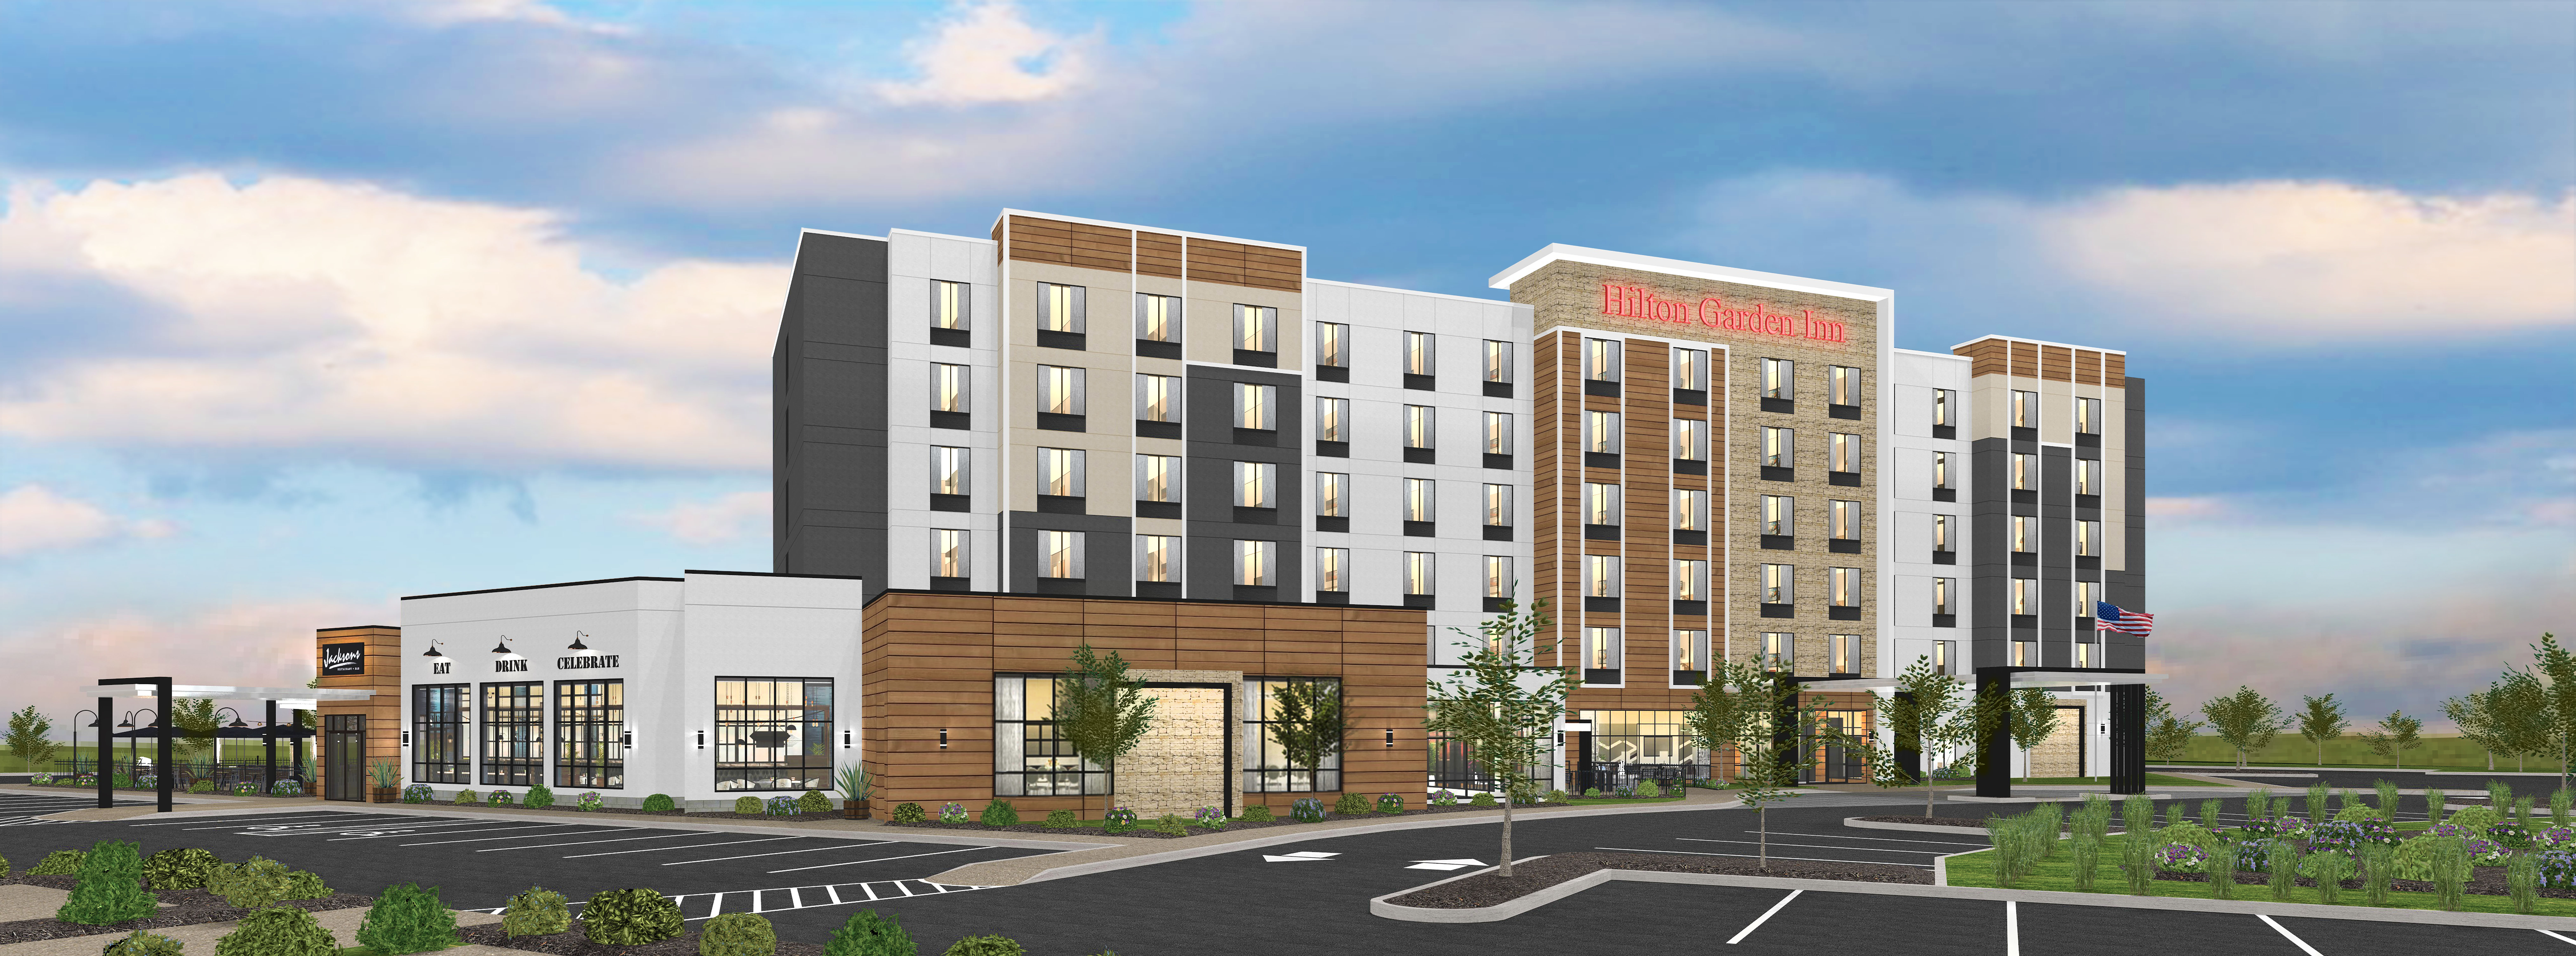 opening in 2019 the newest hotel in the hilton garden inn family will bring 140 sleeping rooms to the growing beaver valley area the hotel will feature an - The Hilton Garden Inn